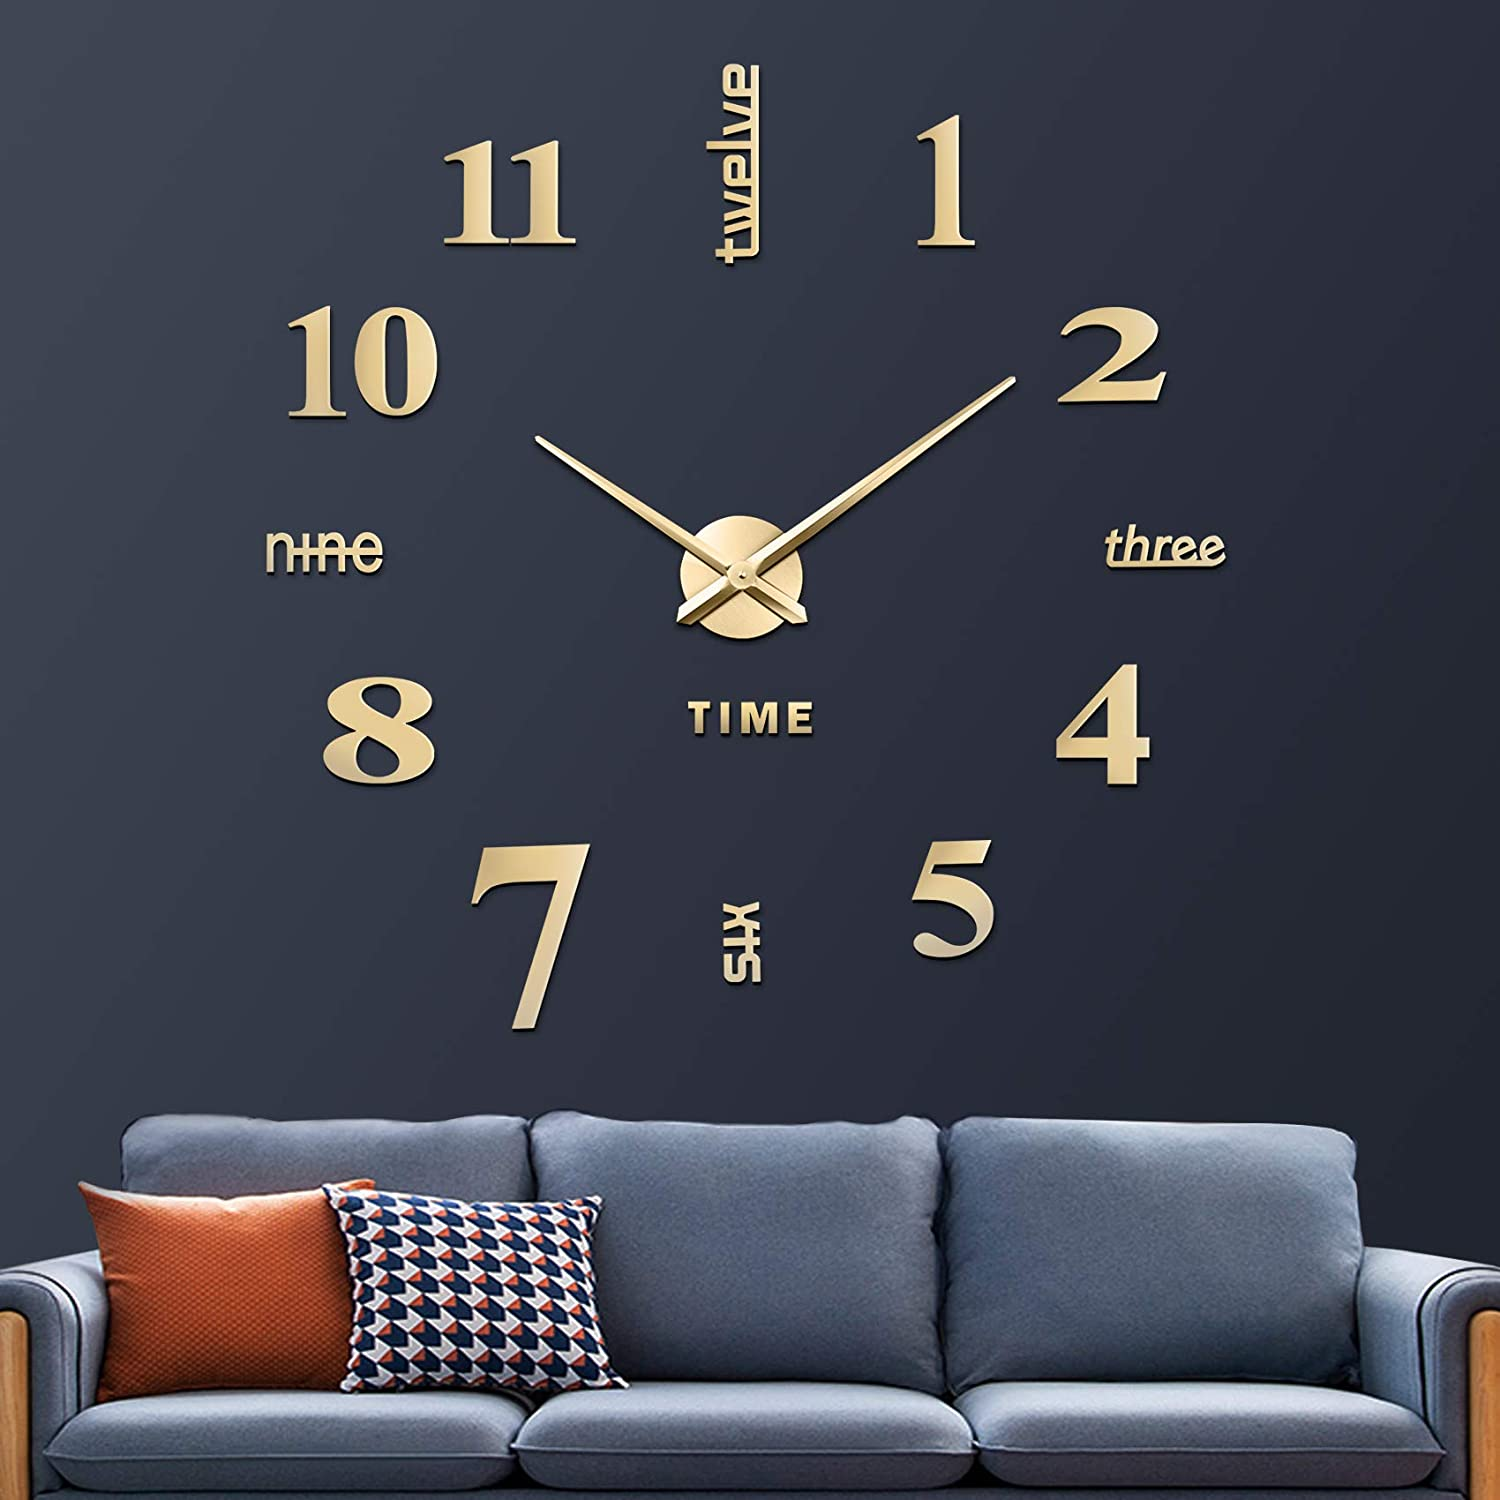 CreationStore Mirror Surface Decorative Clock 3D DIY Wall Clock for Living Room Bedroom Office Hotel Wall Decoration